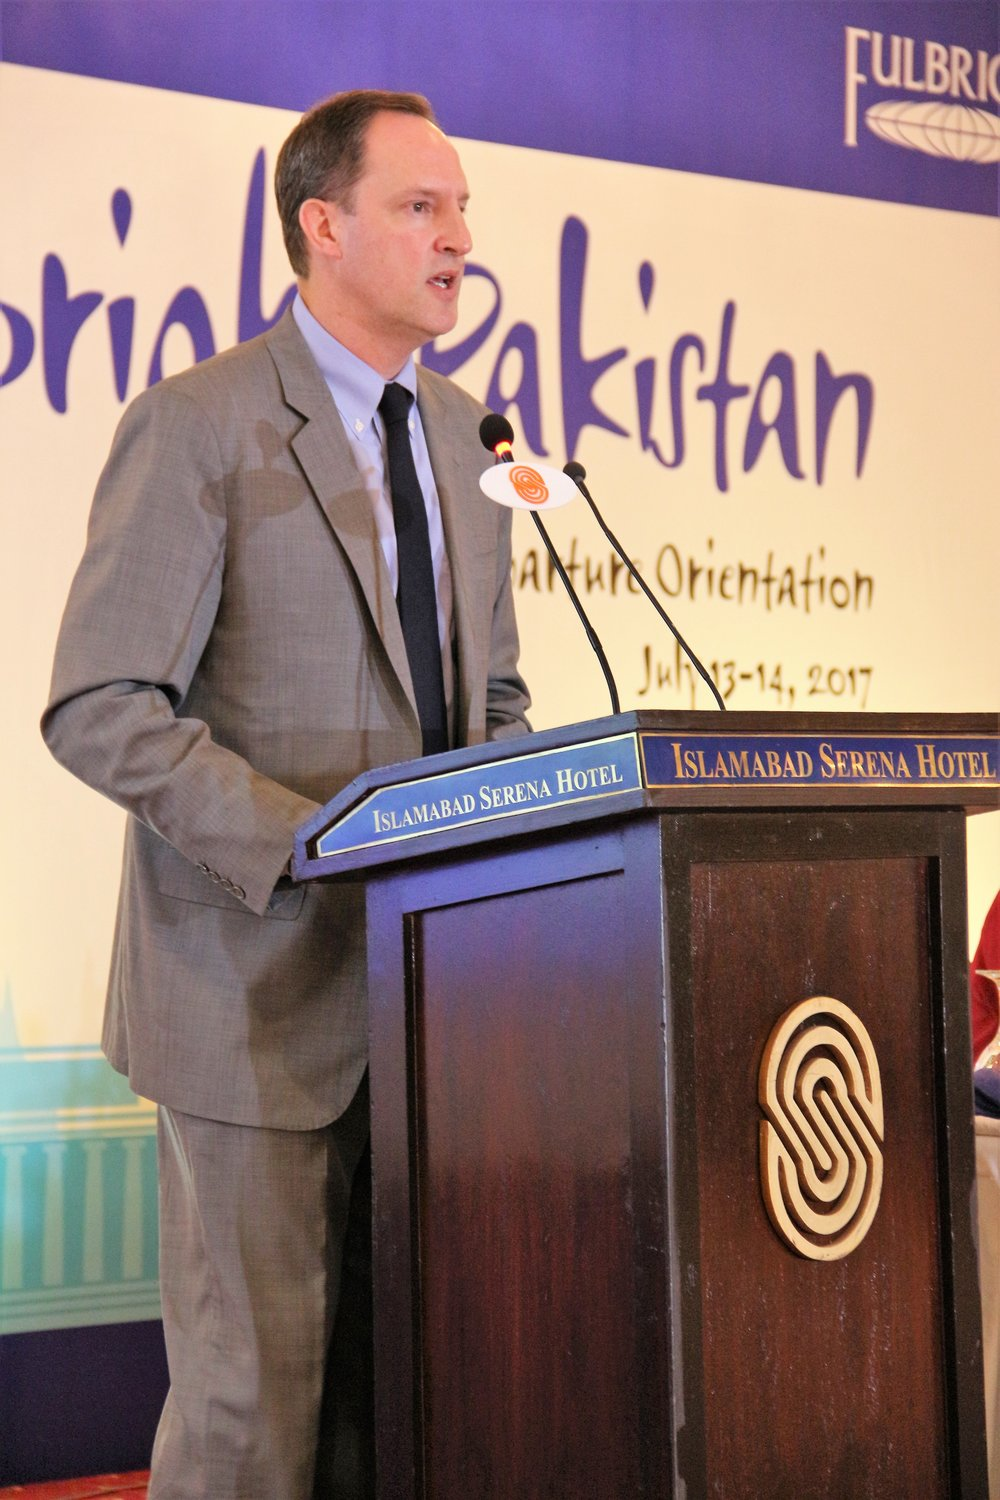 U.S. Embassy Chargé d'Affaires Jonathan Pratt congratulated Pakistani students and scholars on receiving the prestigious Fulbright scholarship.